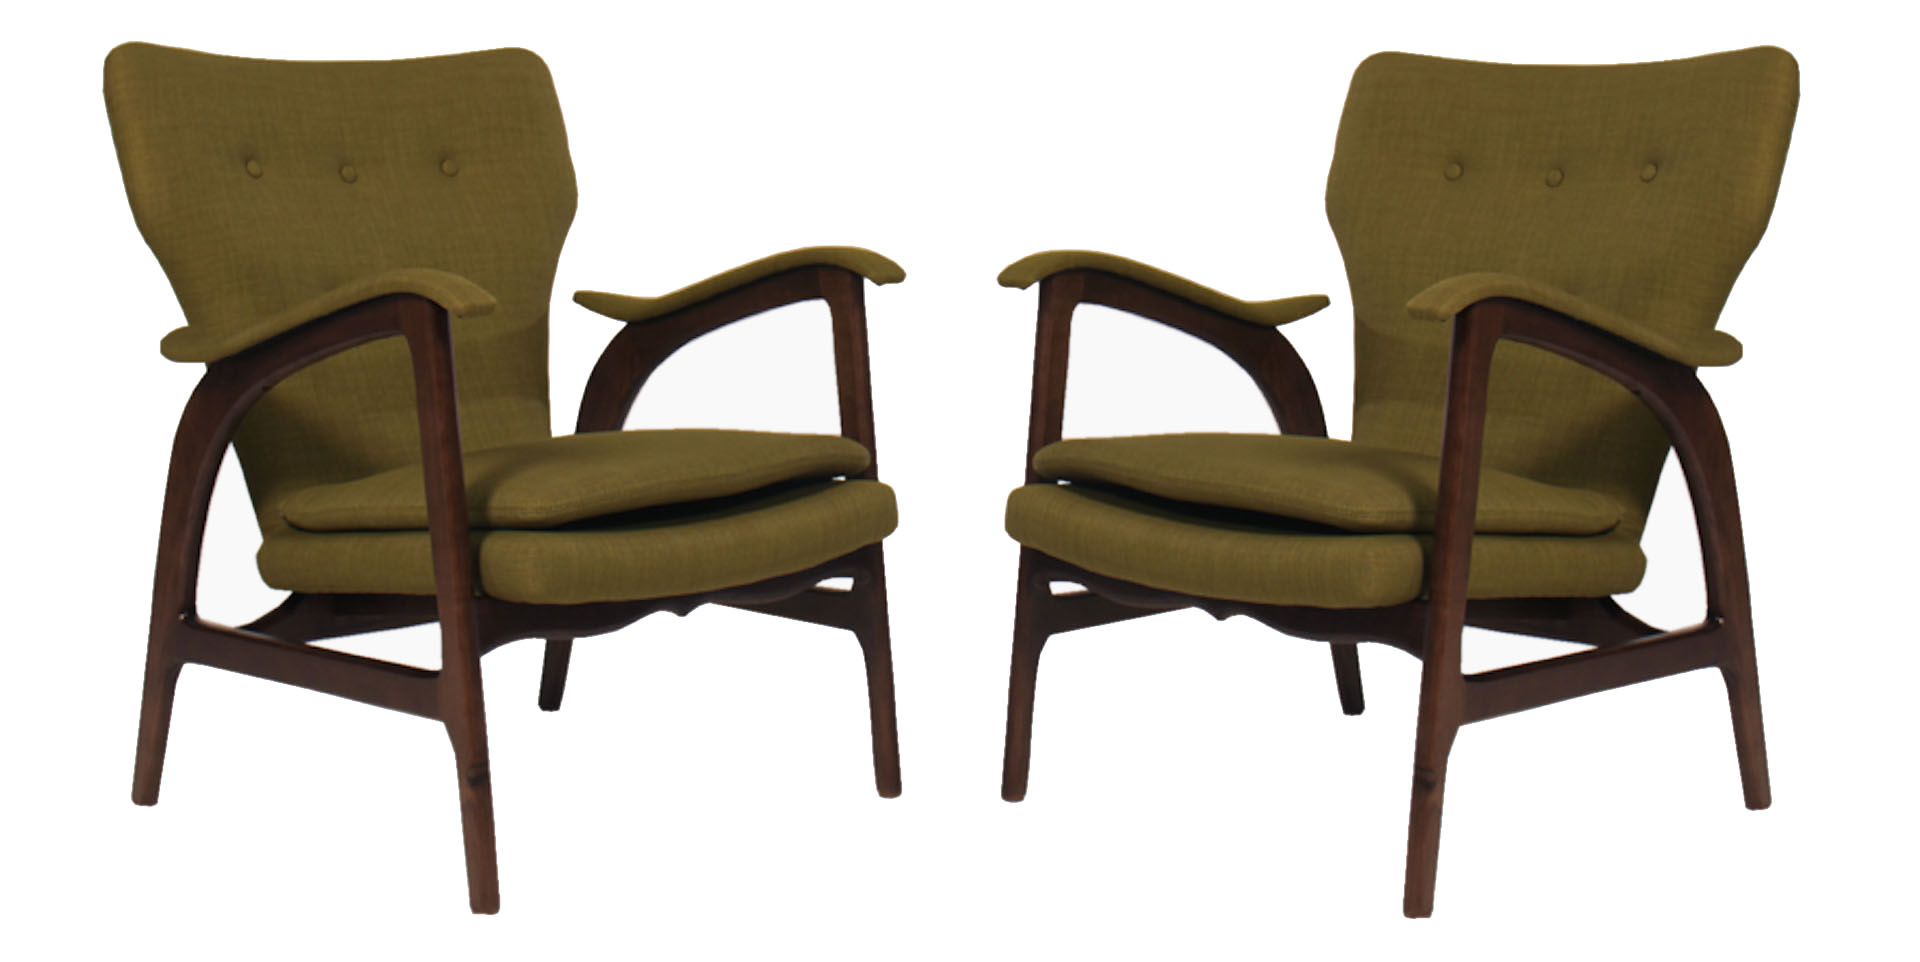 A Pair Of Mid Century Chairs In The Manner Of Vladimir Kagan